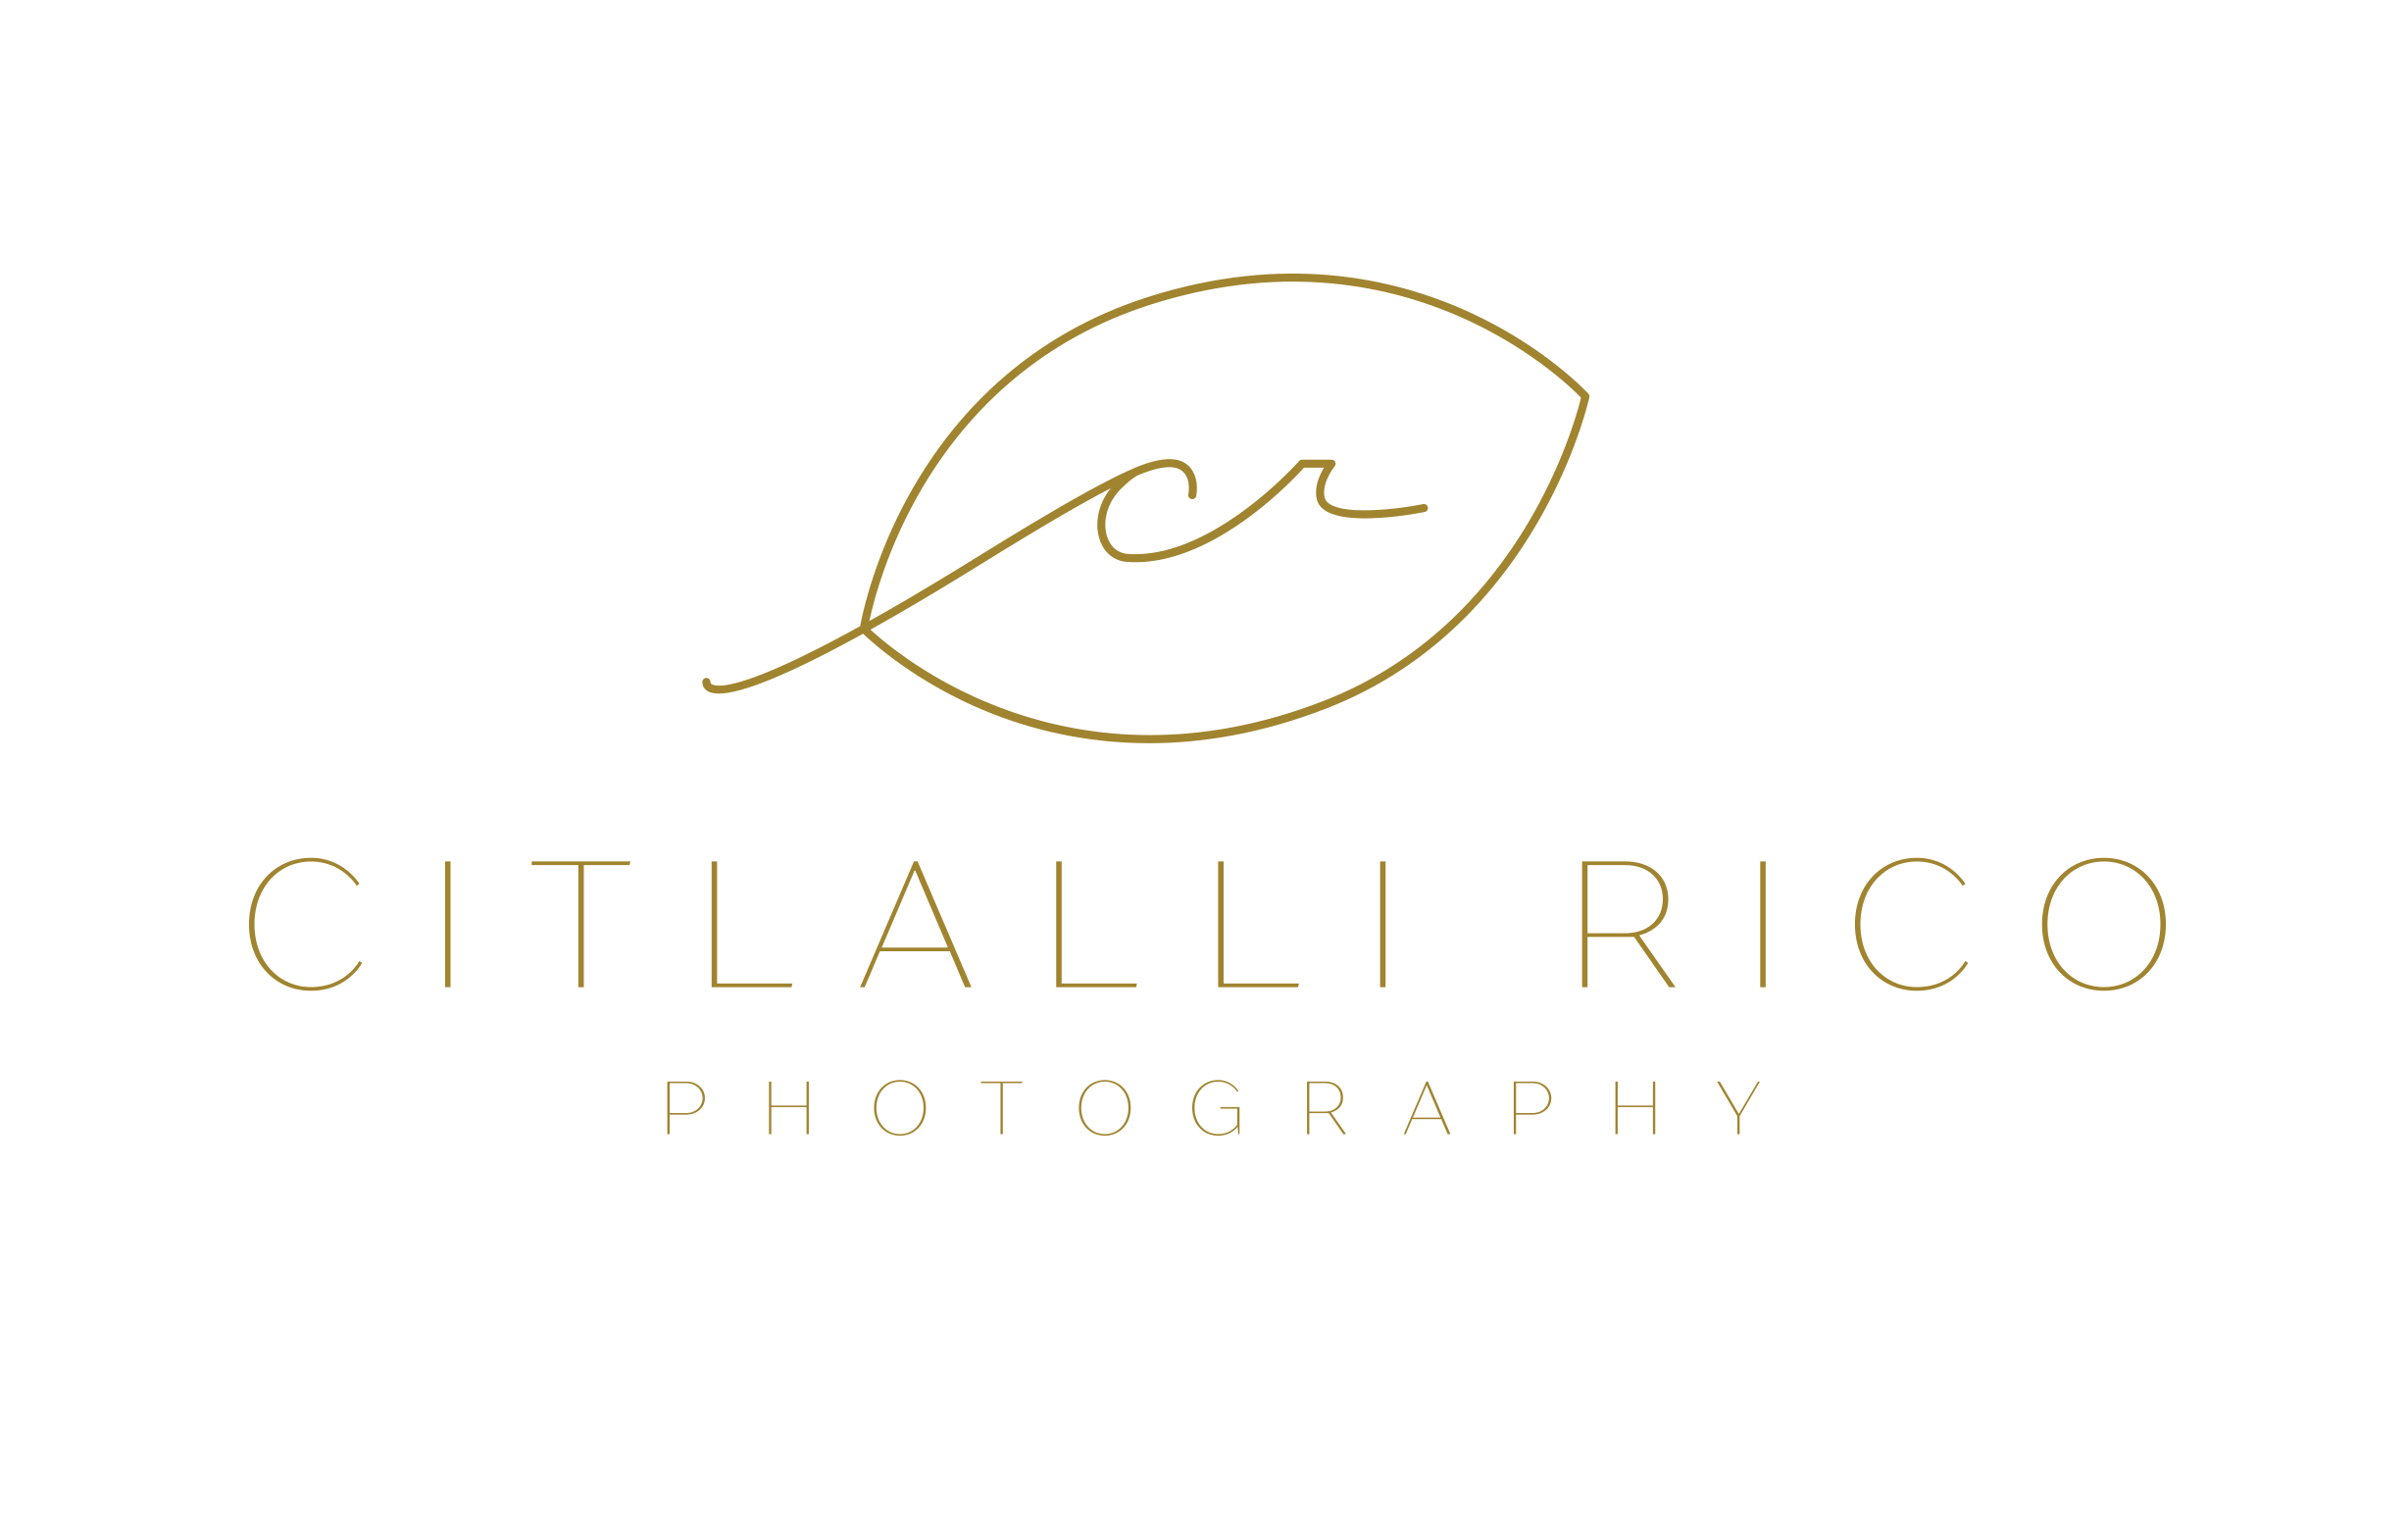 Citlalli Rico Photography